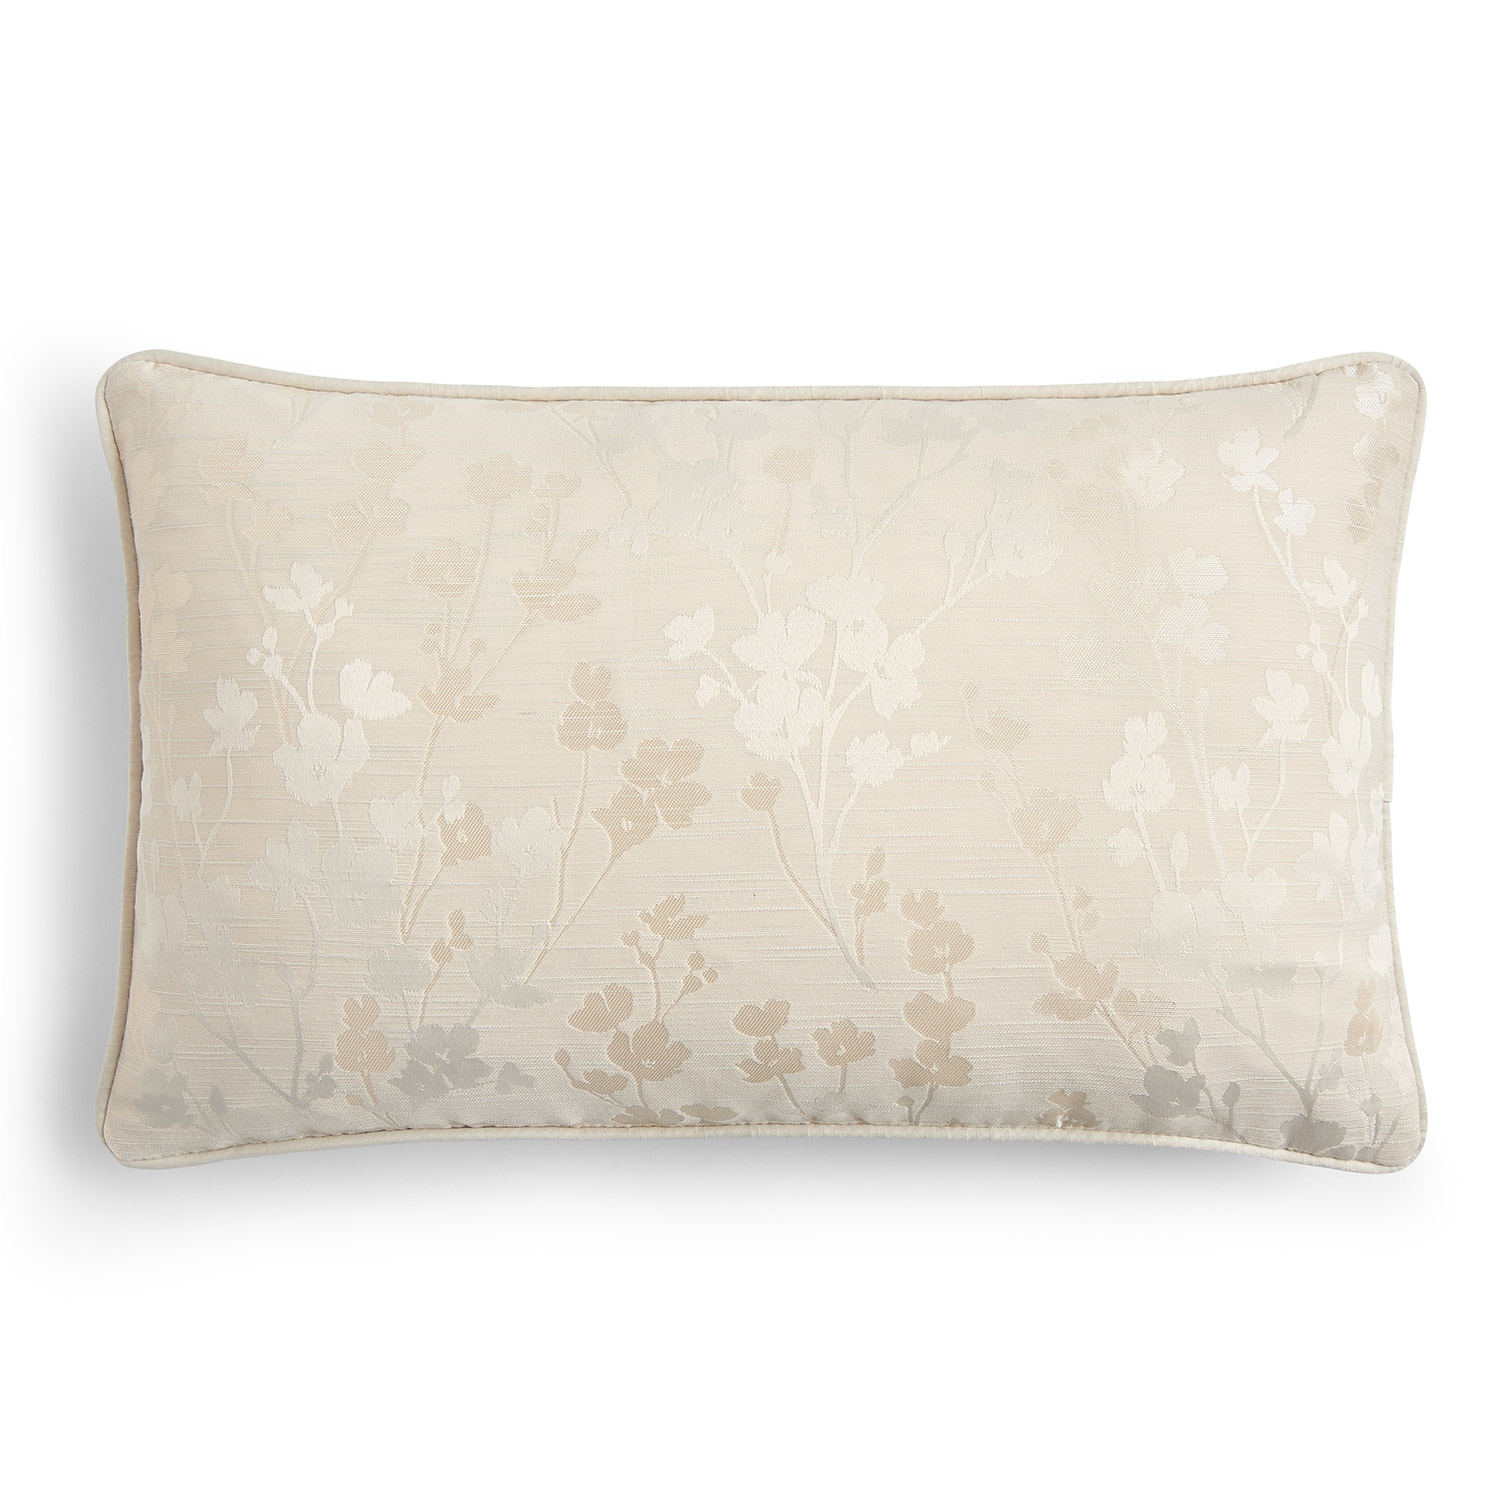 Blossom Natural Luxury Filled Boudoir Cushion